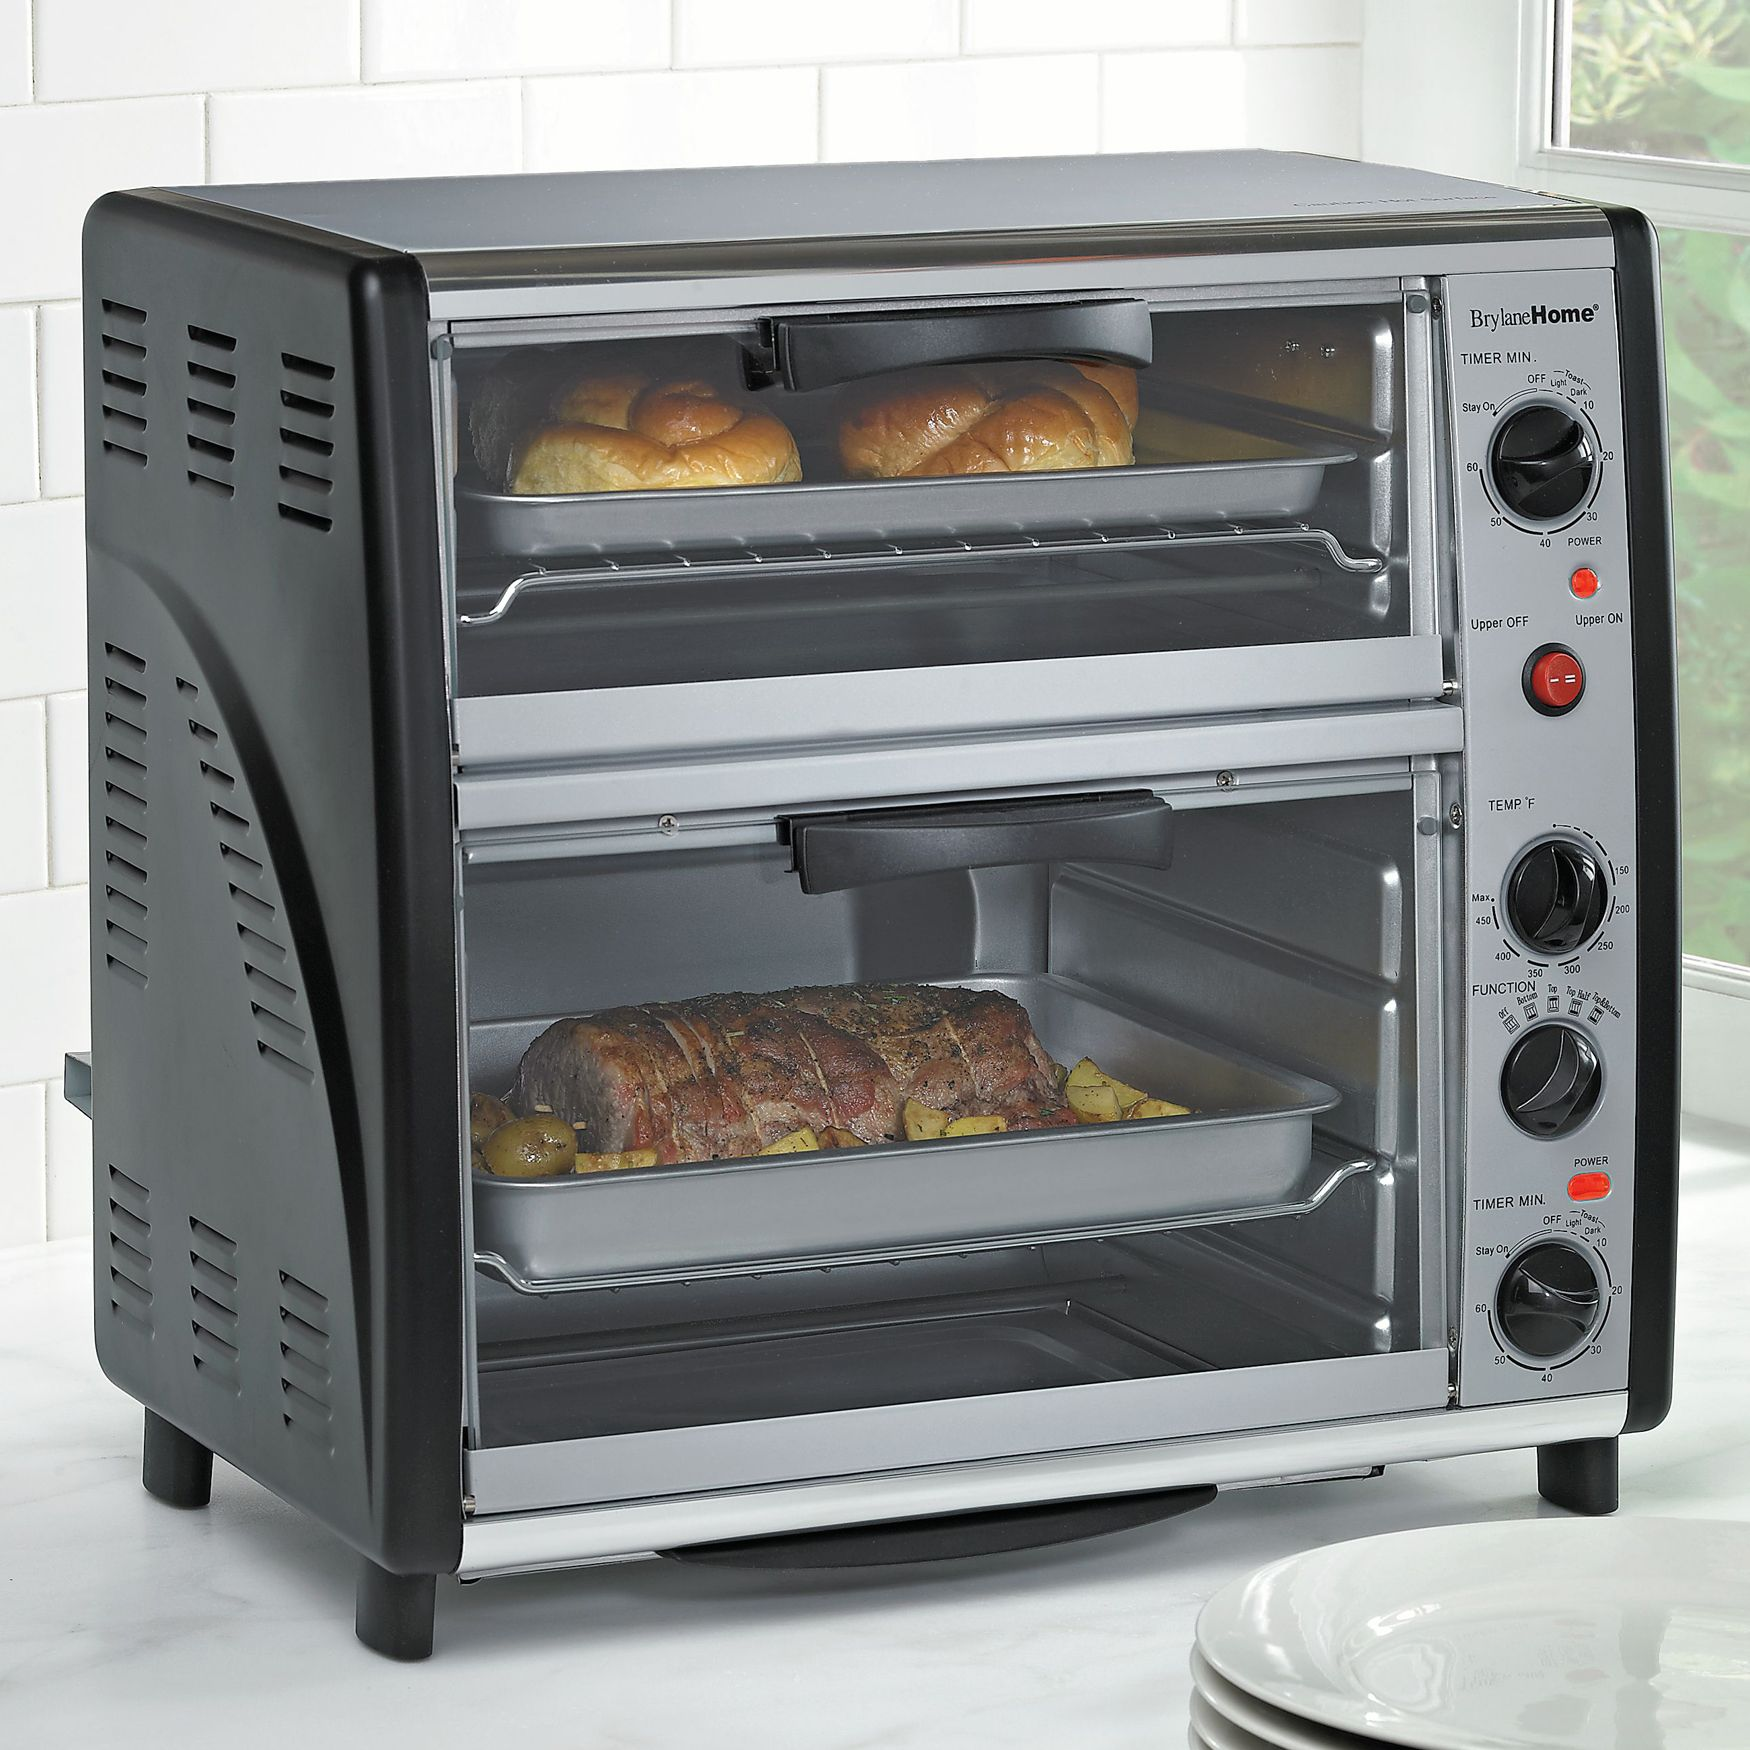 Brylanehome Double Toaster Oven Kitchen Appliances Brylanehome Toaster Oven Outdoor Kitchen Outdoor Kitchen Appliances